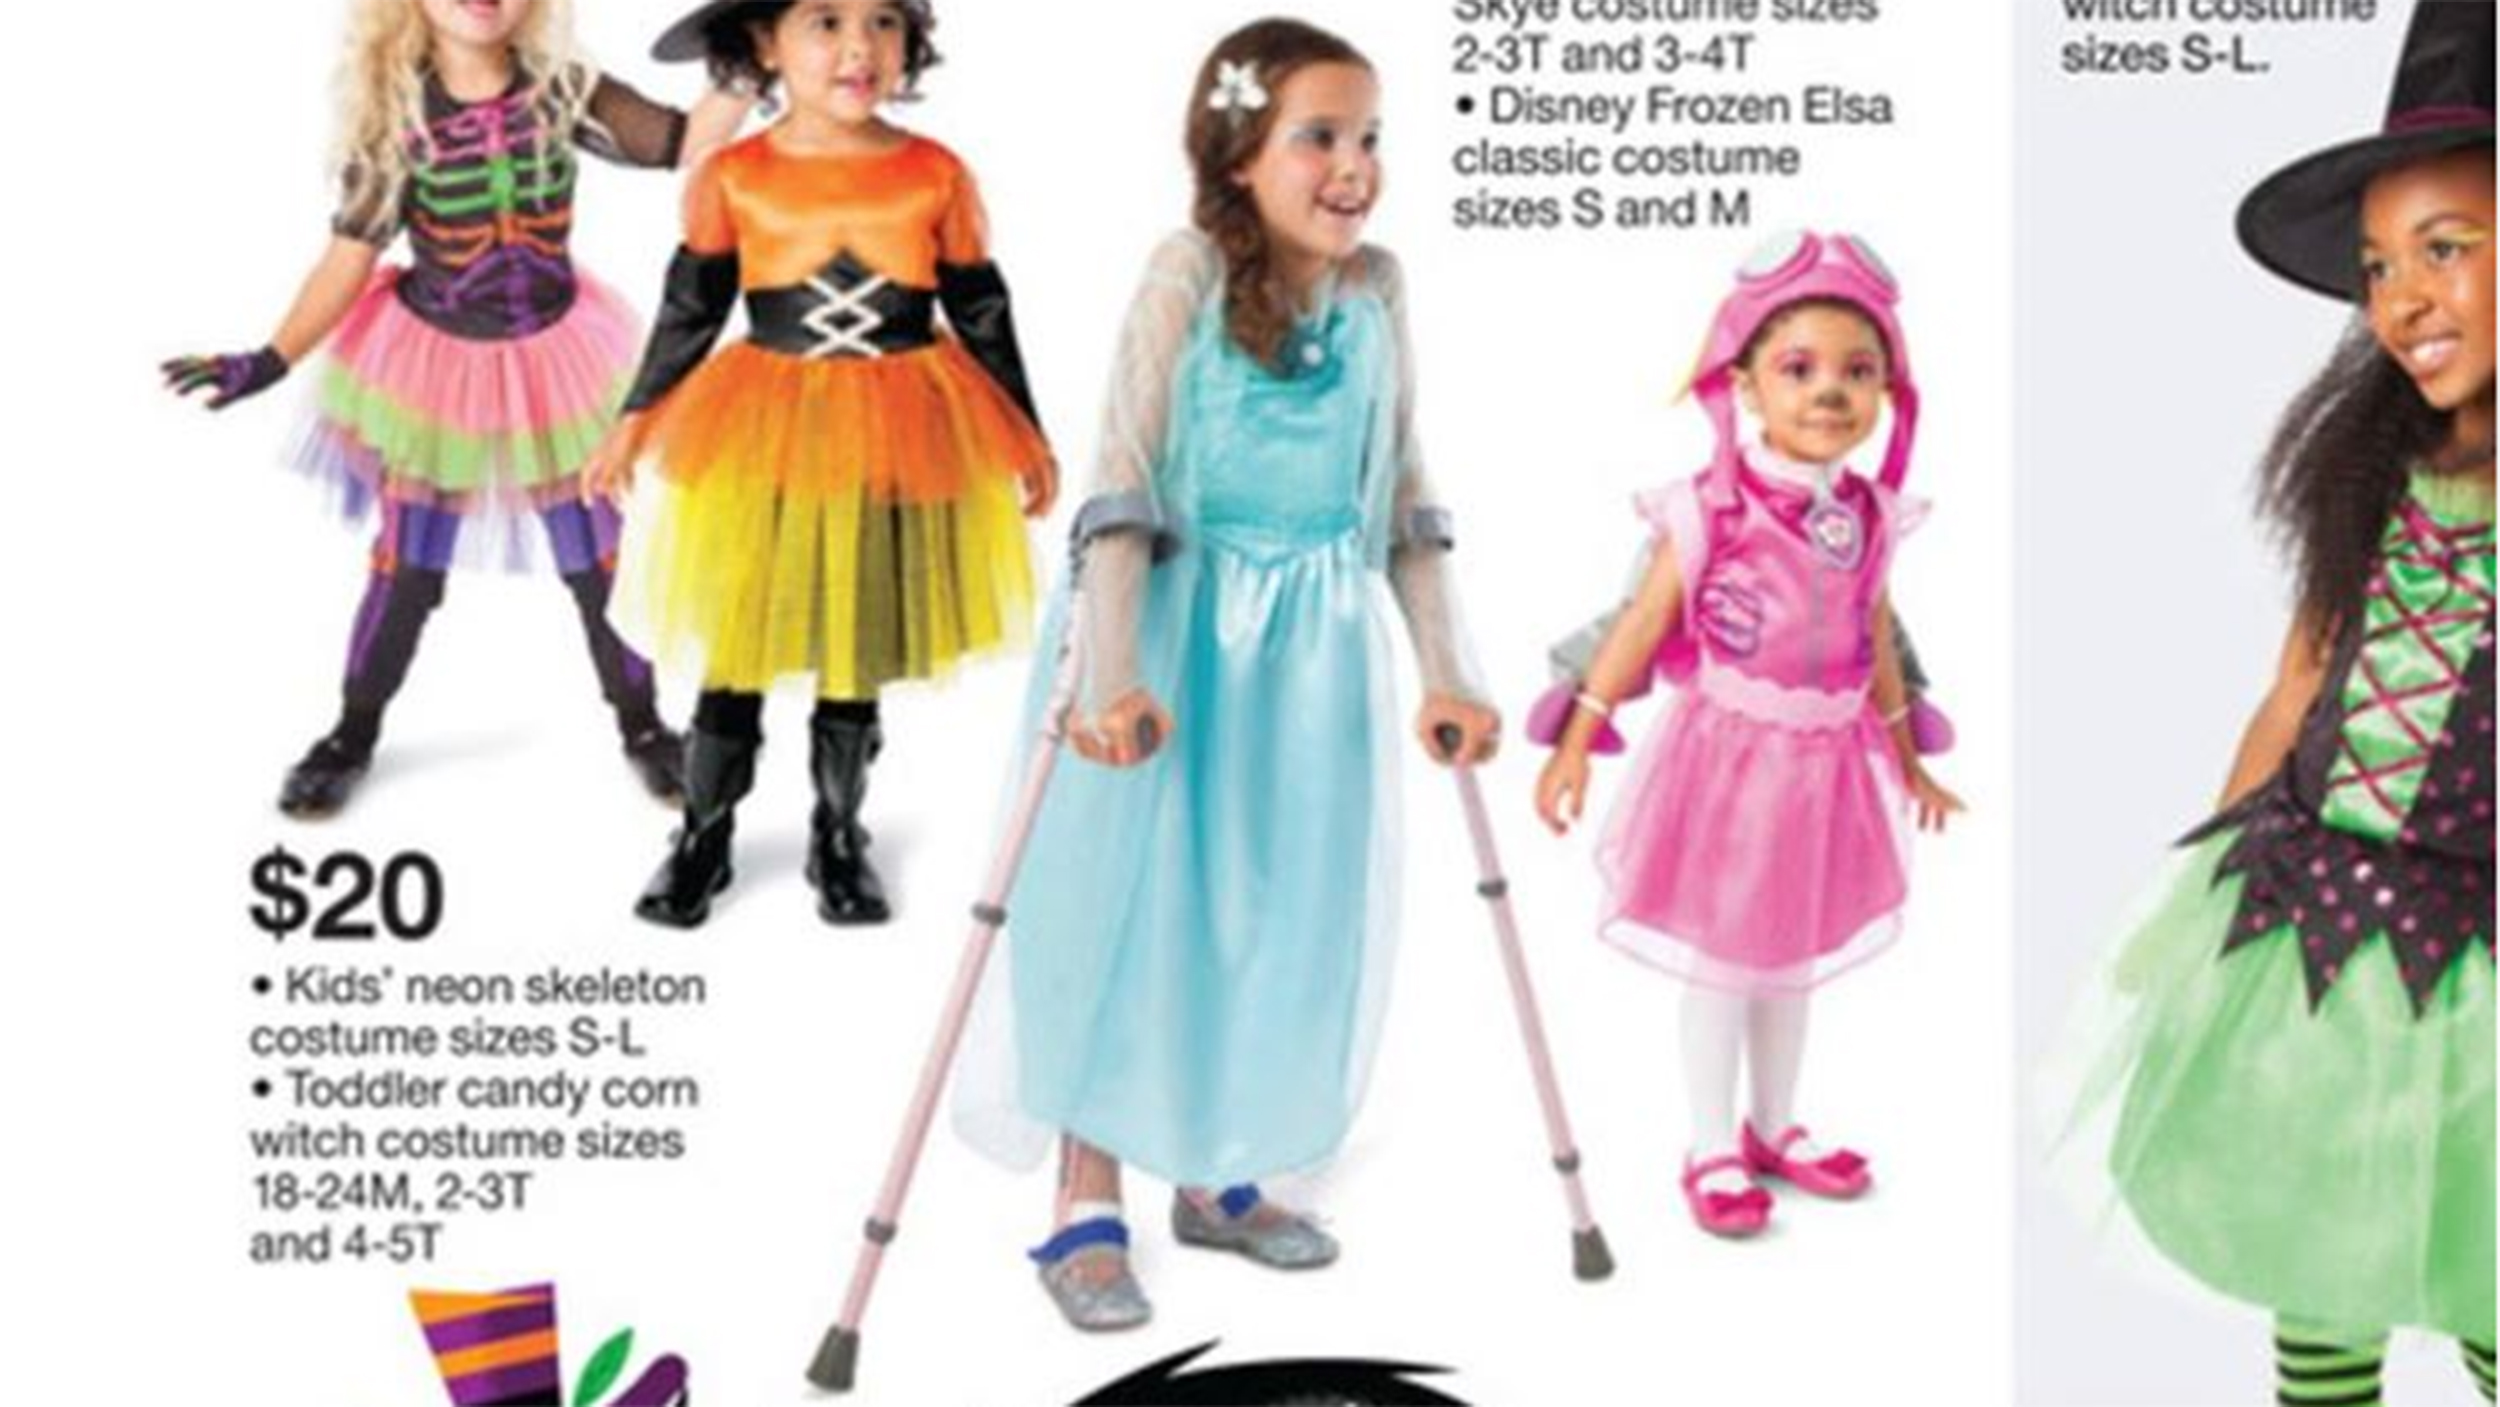 Special needs mom cheers Tar ad featuring girl on crutches